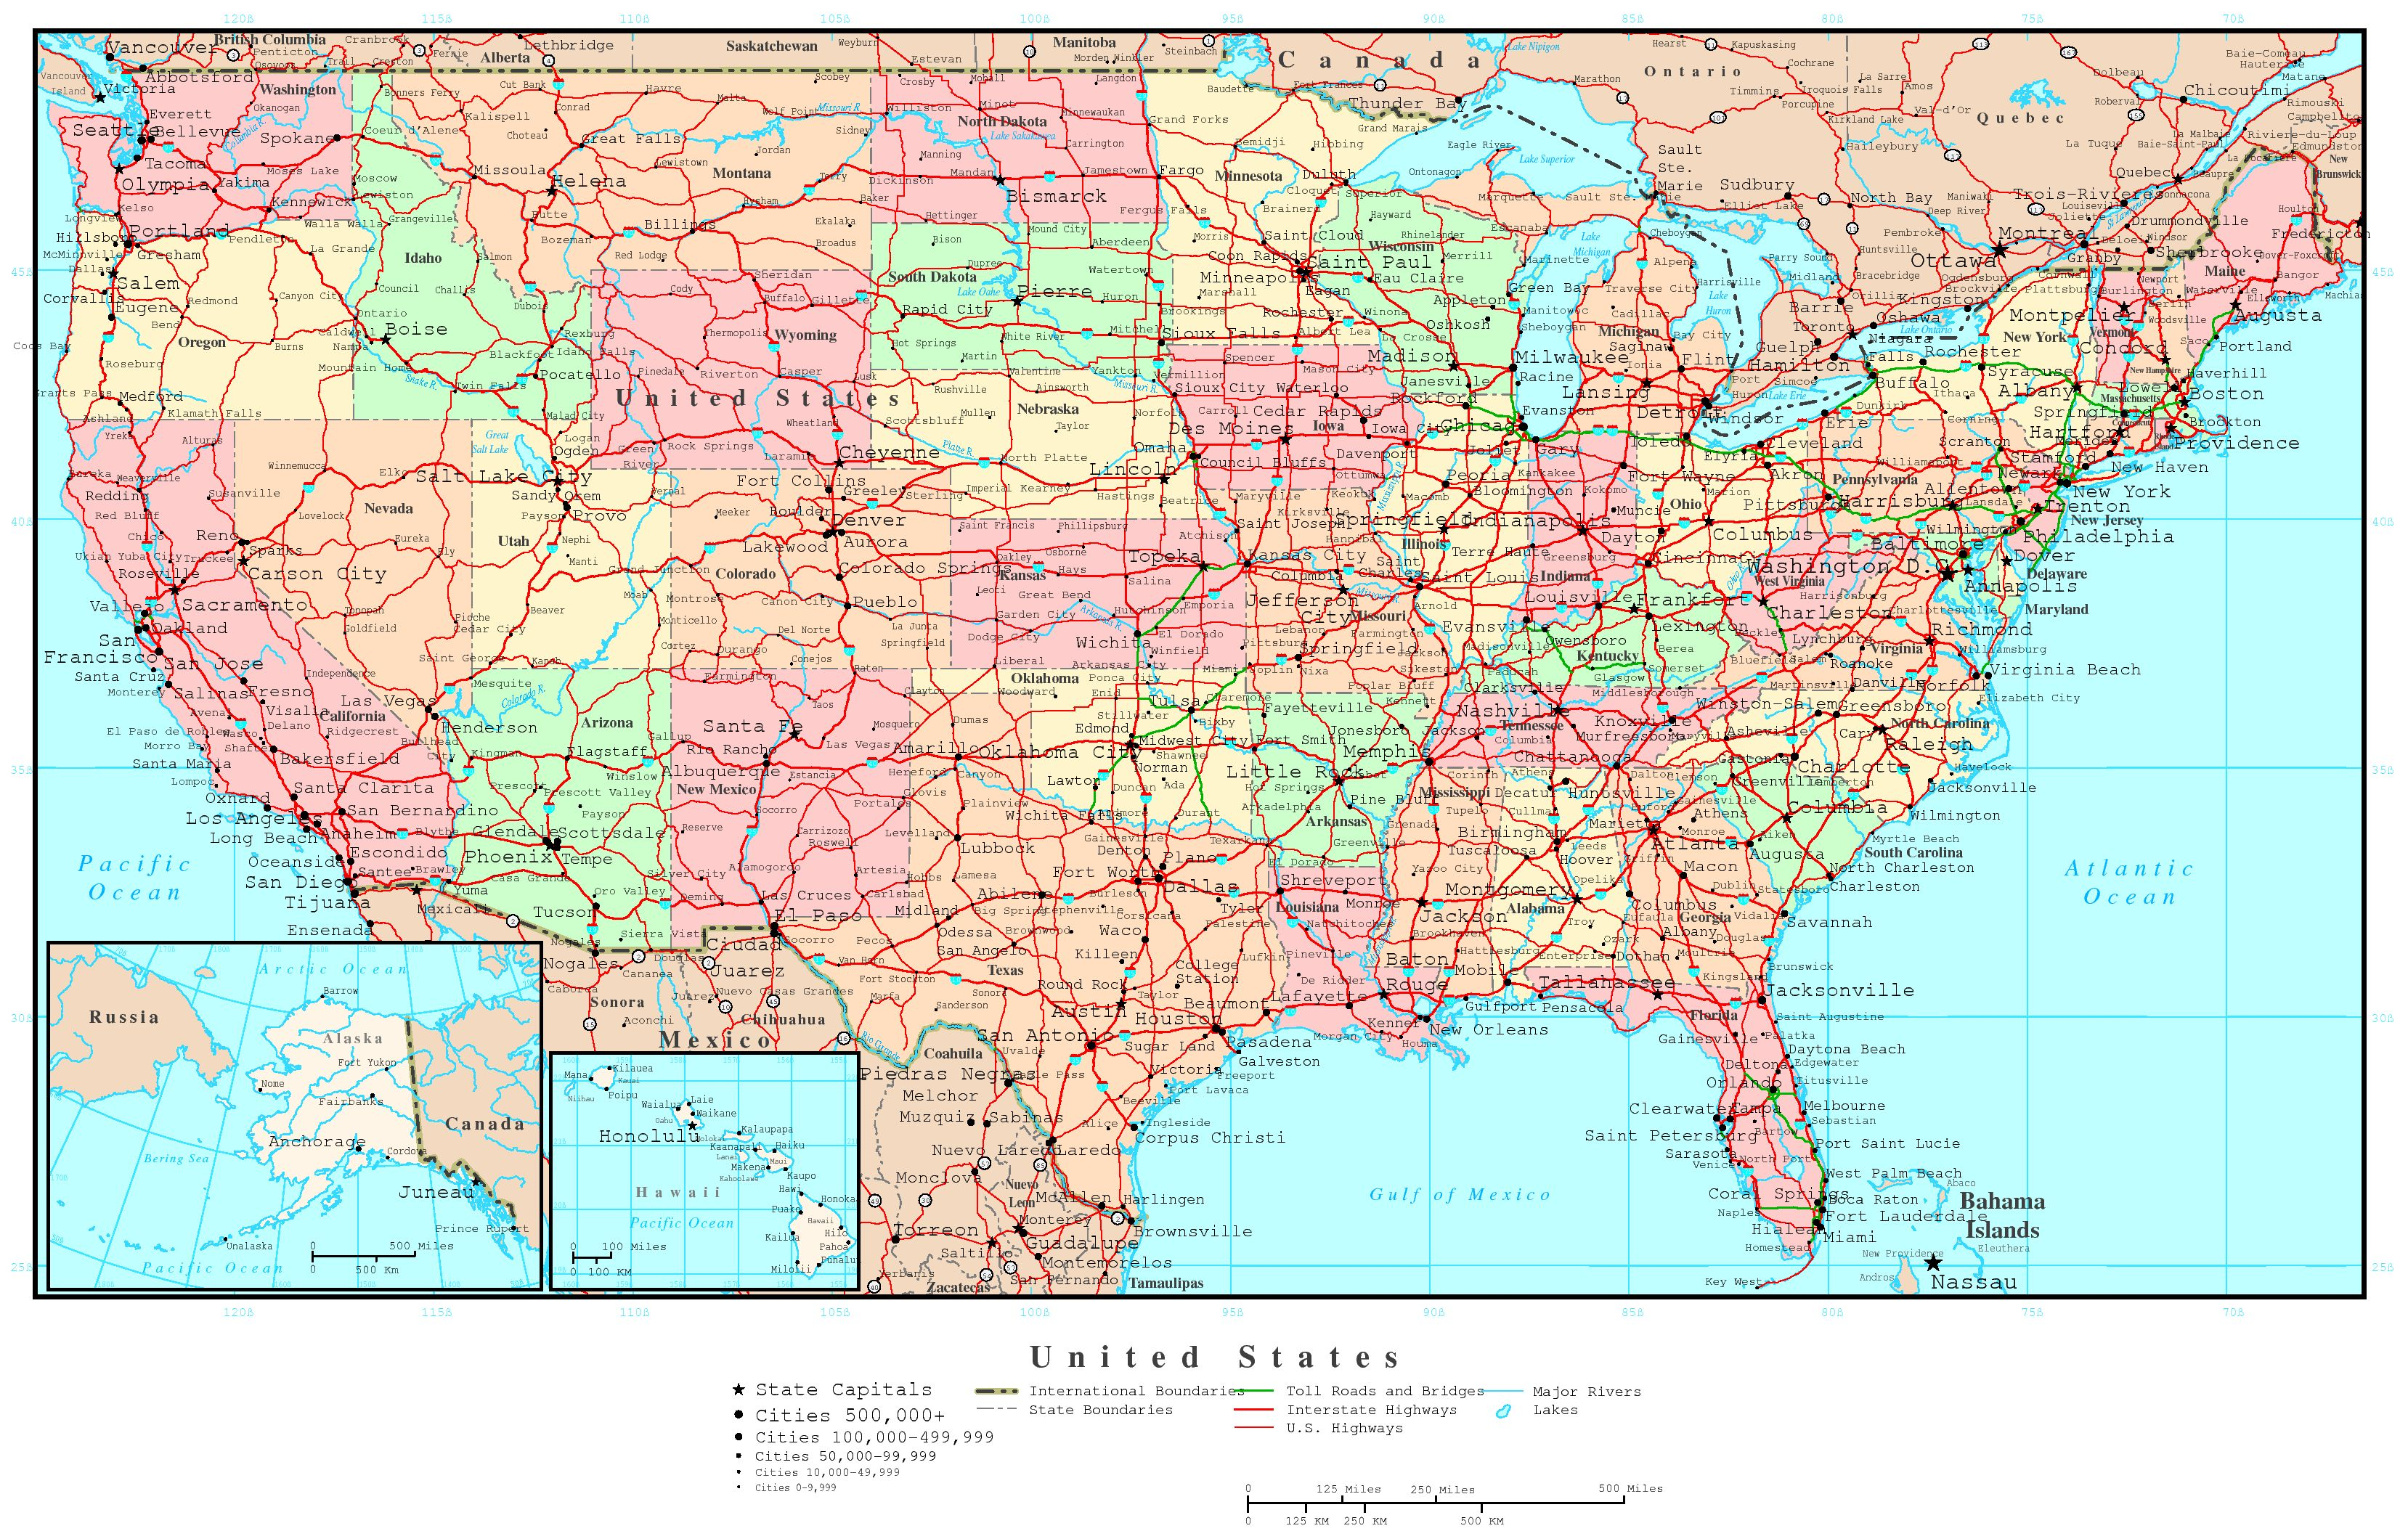 Southeast USA Wall Map Mapscom Map S E Usa Google Images Download - Southeast us rail map